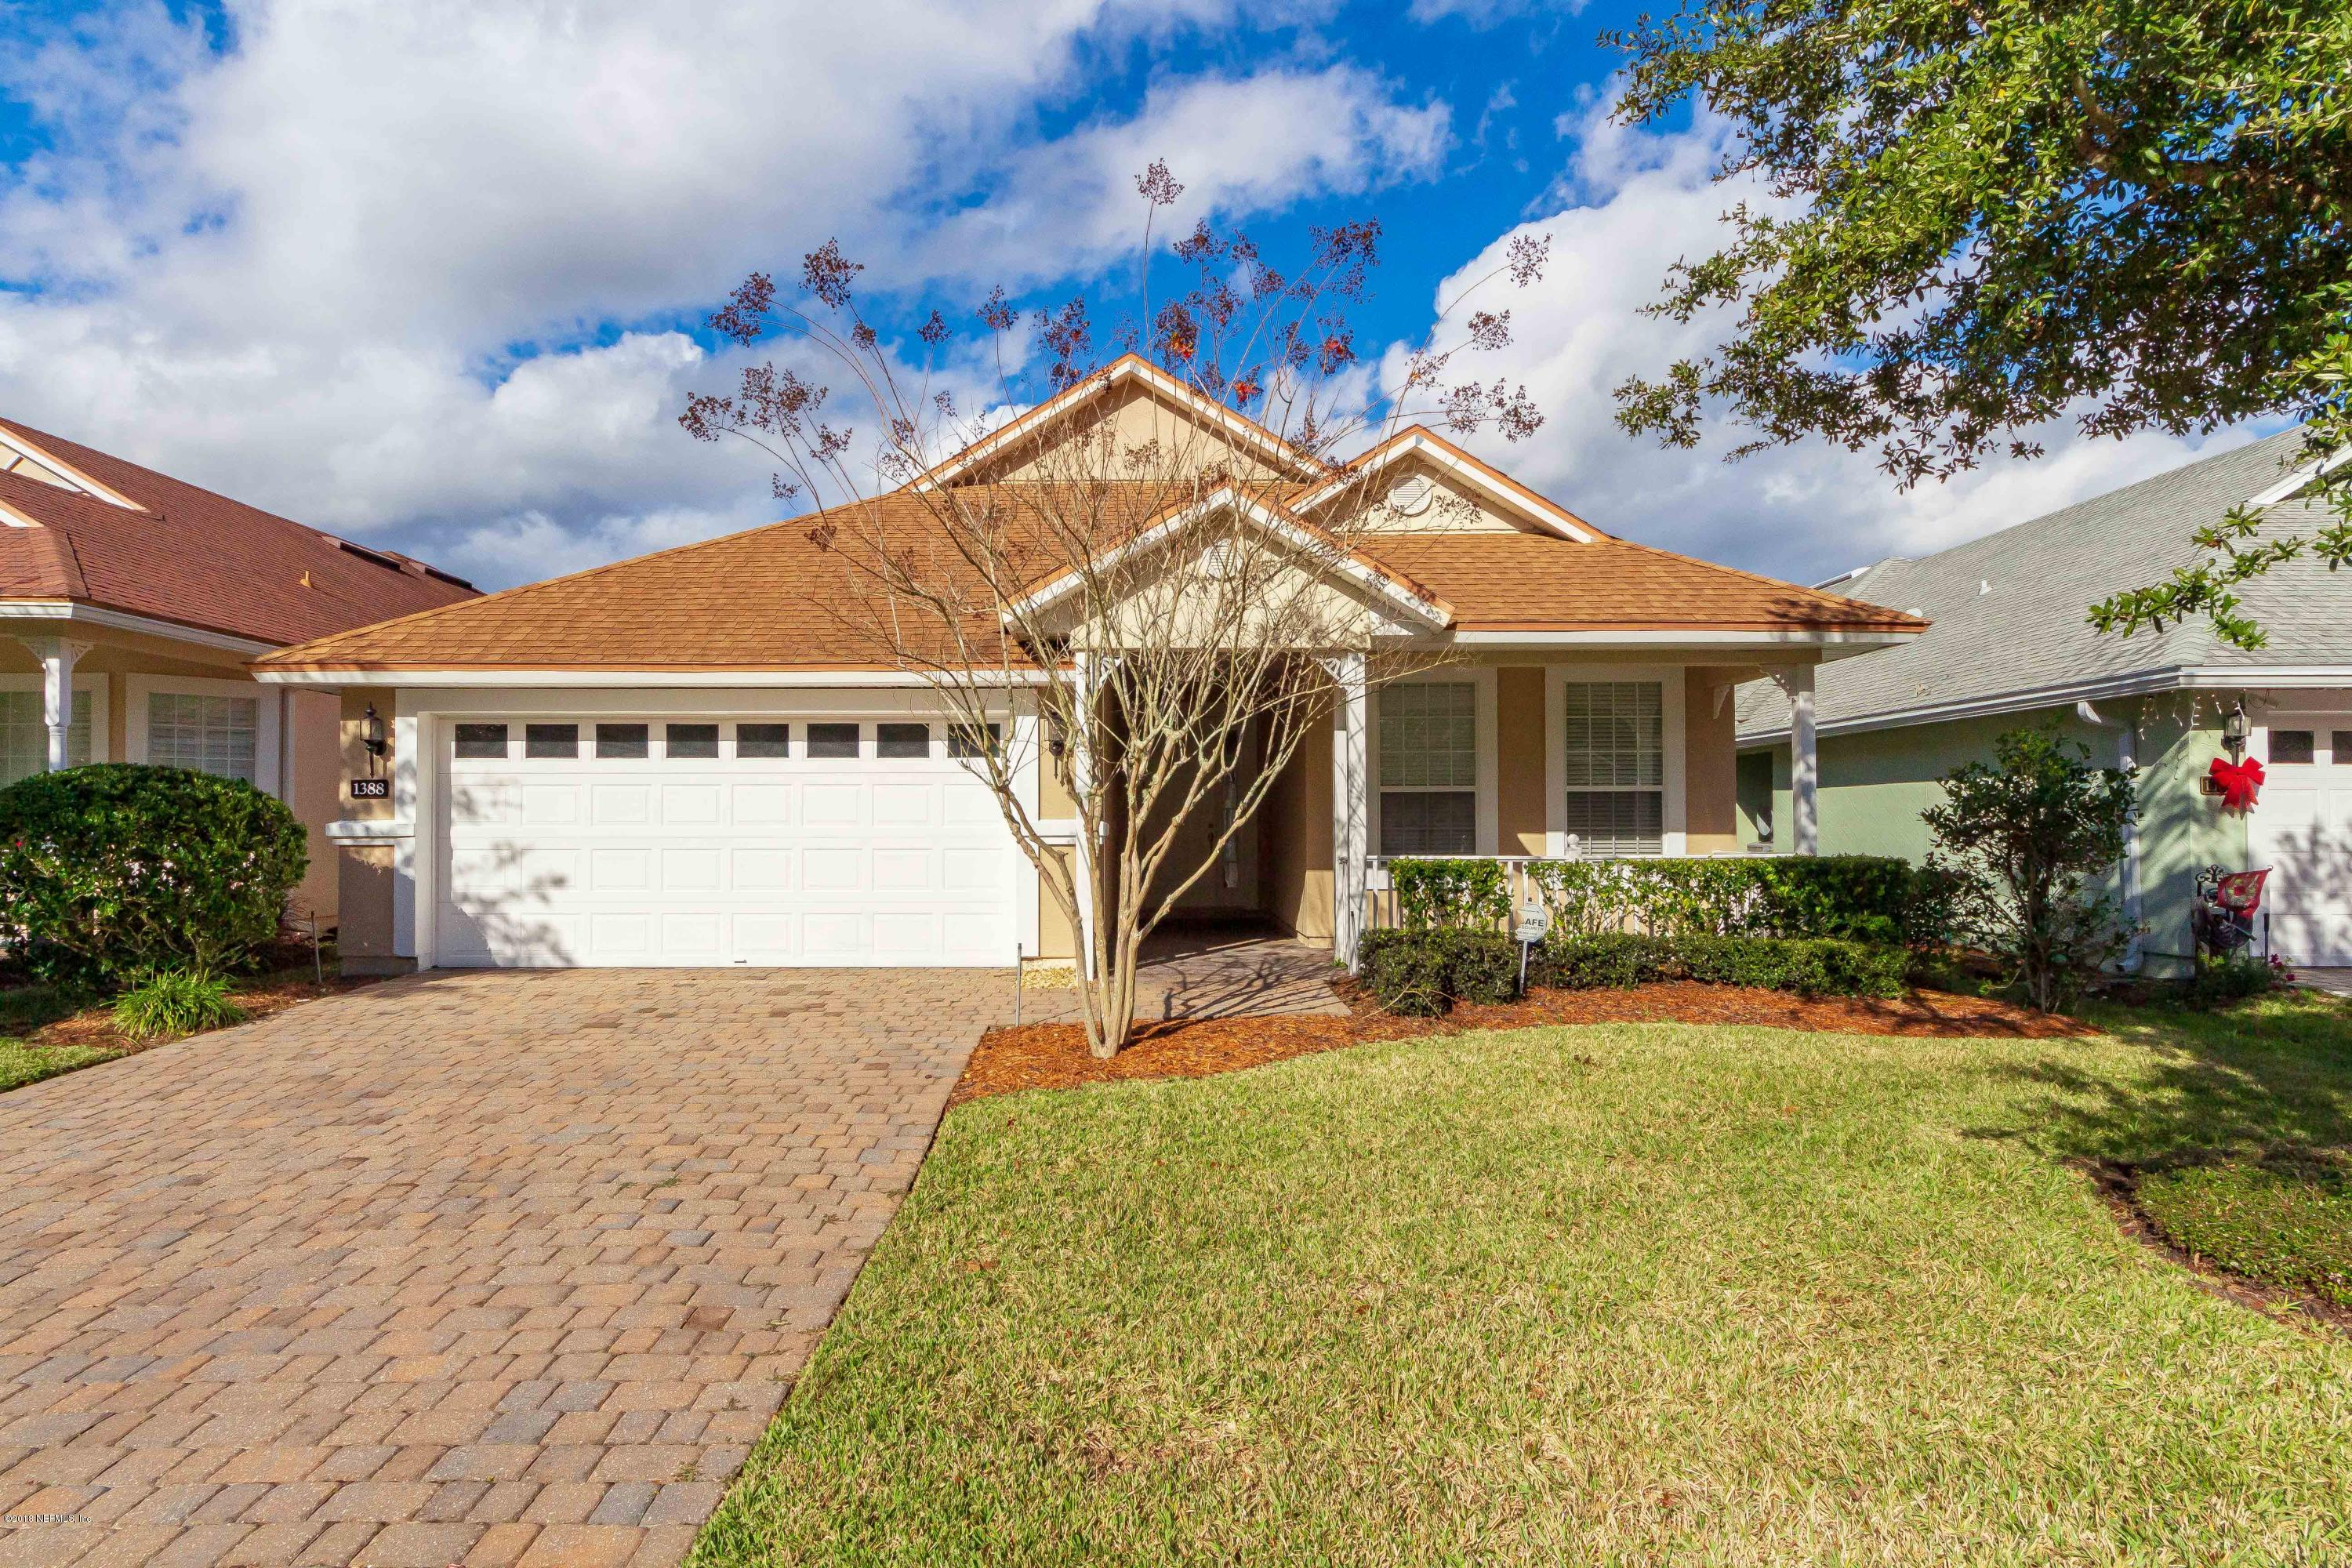 1388 CASTLE PINES, ST AUGUSTINE, FLORIDA 32092-0610, 3 Bedrooms Bedrooms, ,2 BathroomsBathrooms,Residential - single family,For sale,CASTLE PINES,973315